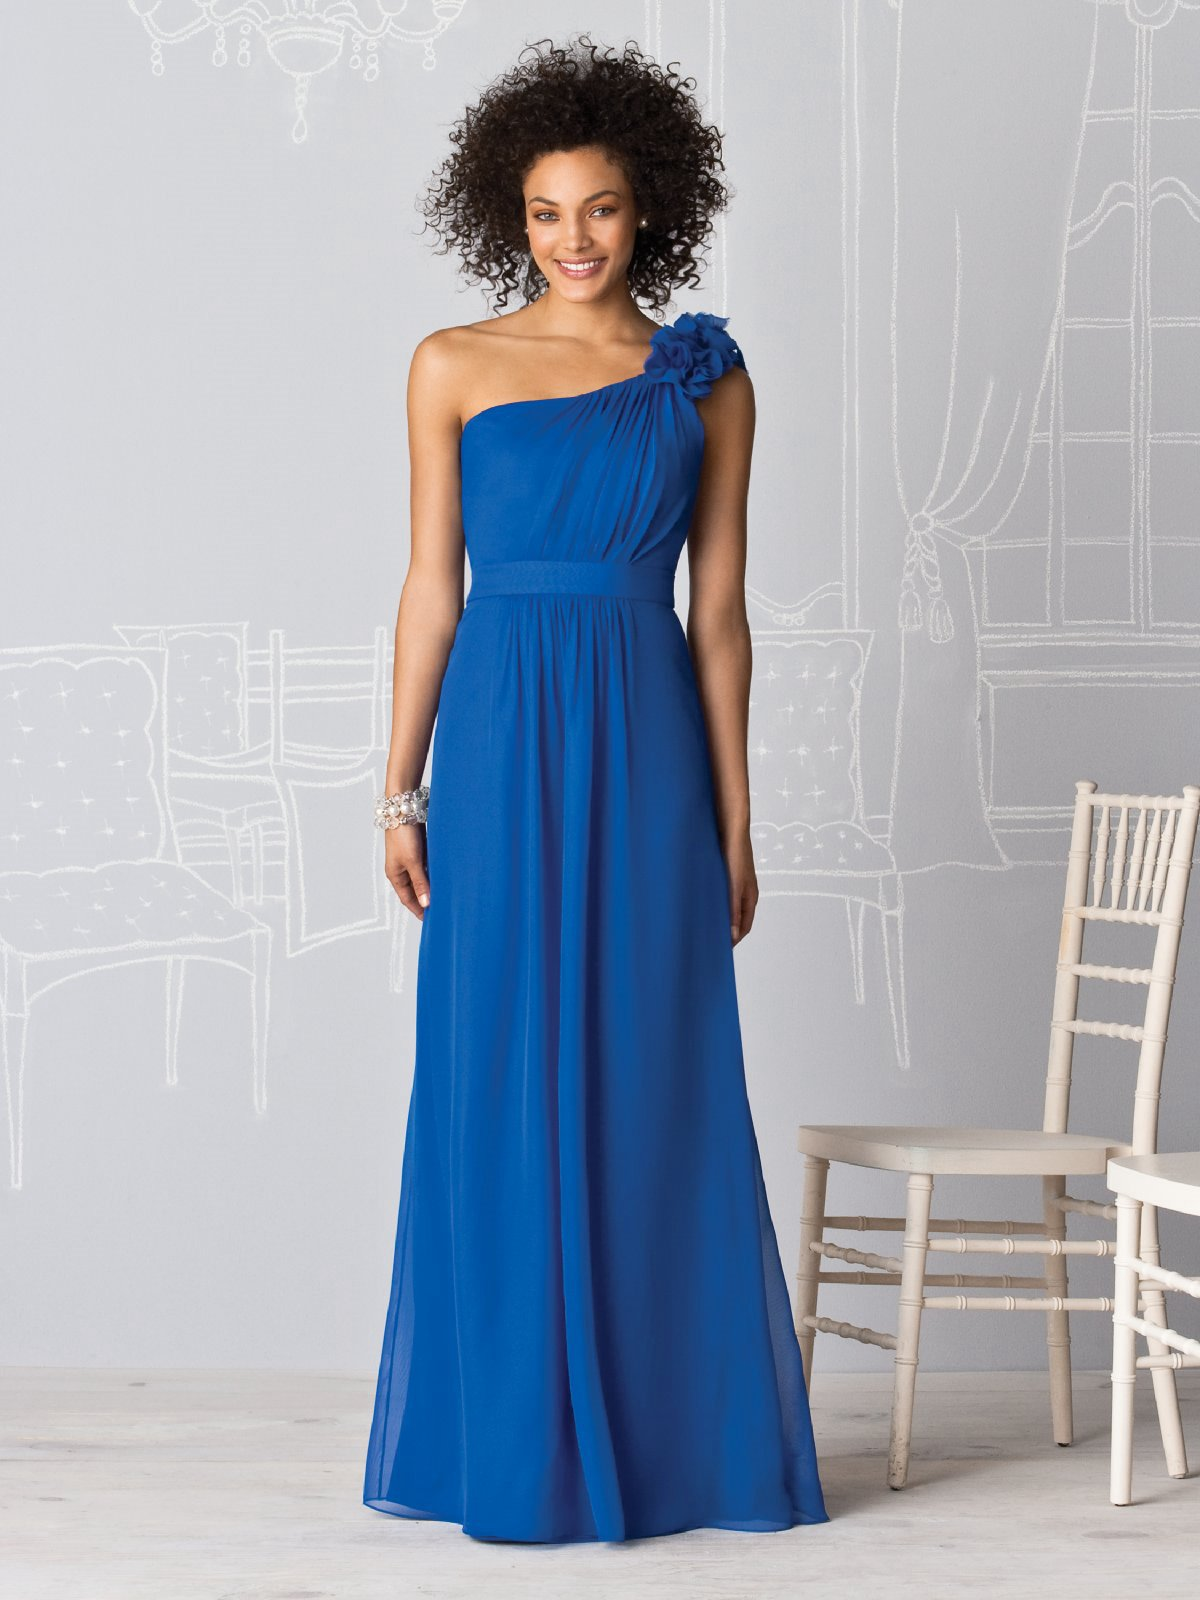 Royal Blue A Line One Shoulder Low Back Floor Length Chiffon Prom Dresses With Drapes And Rosette